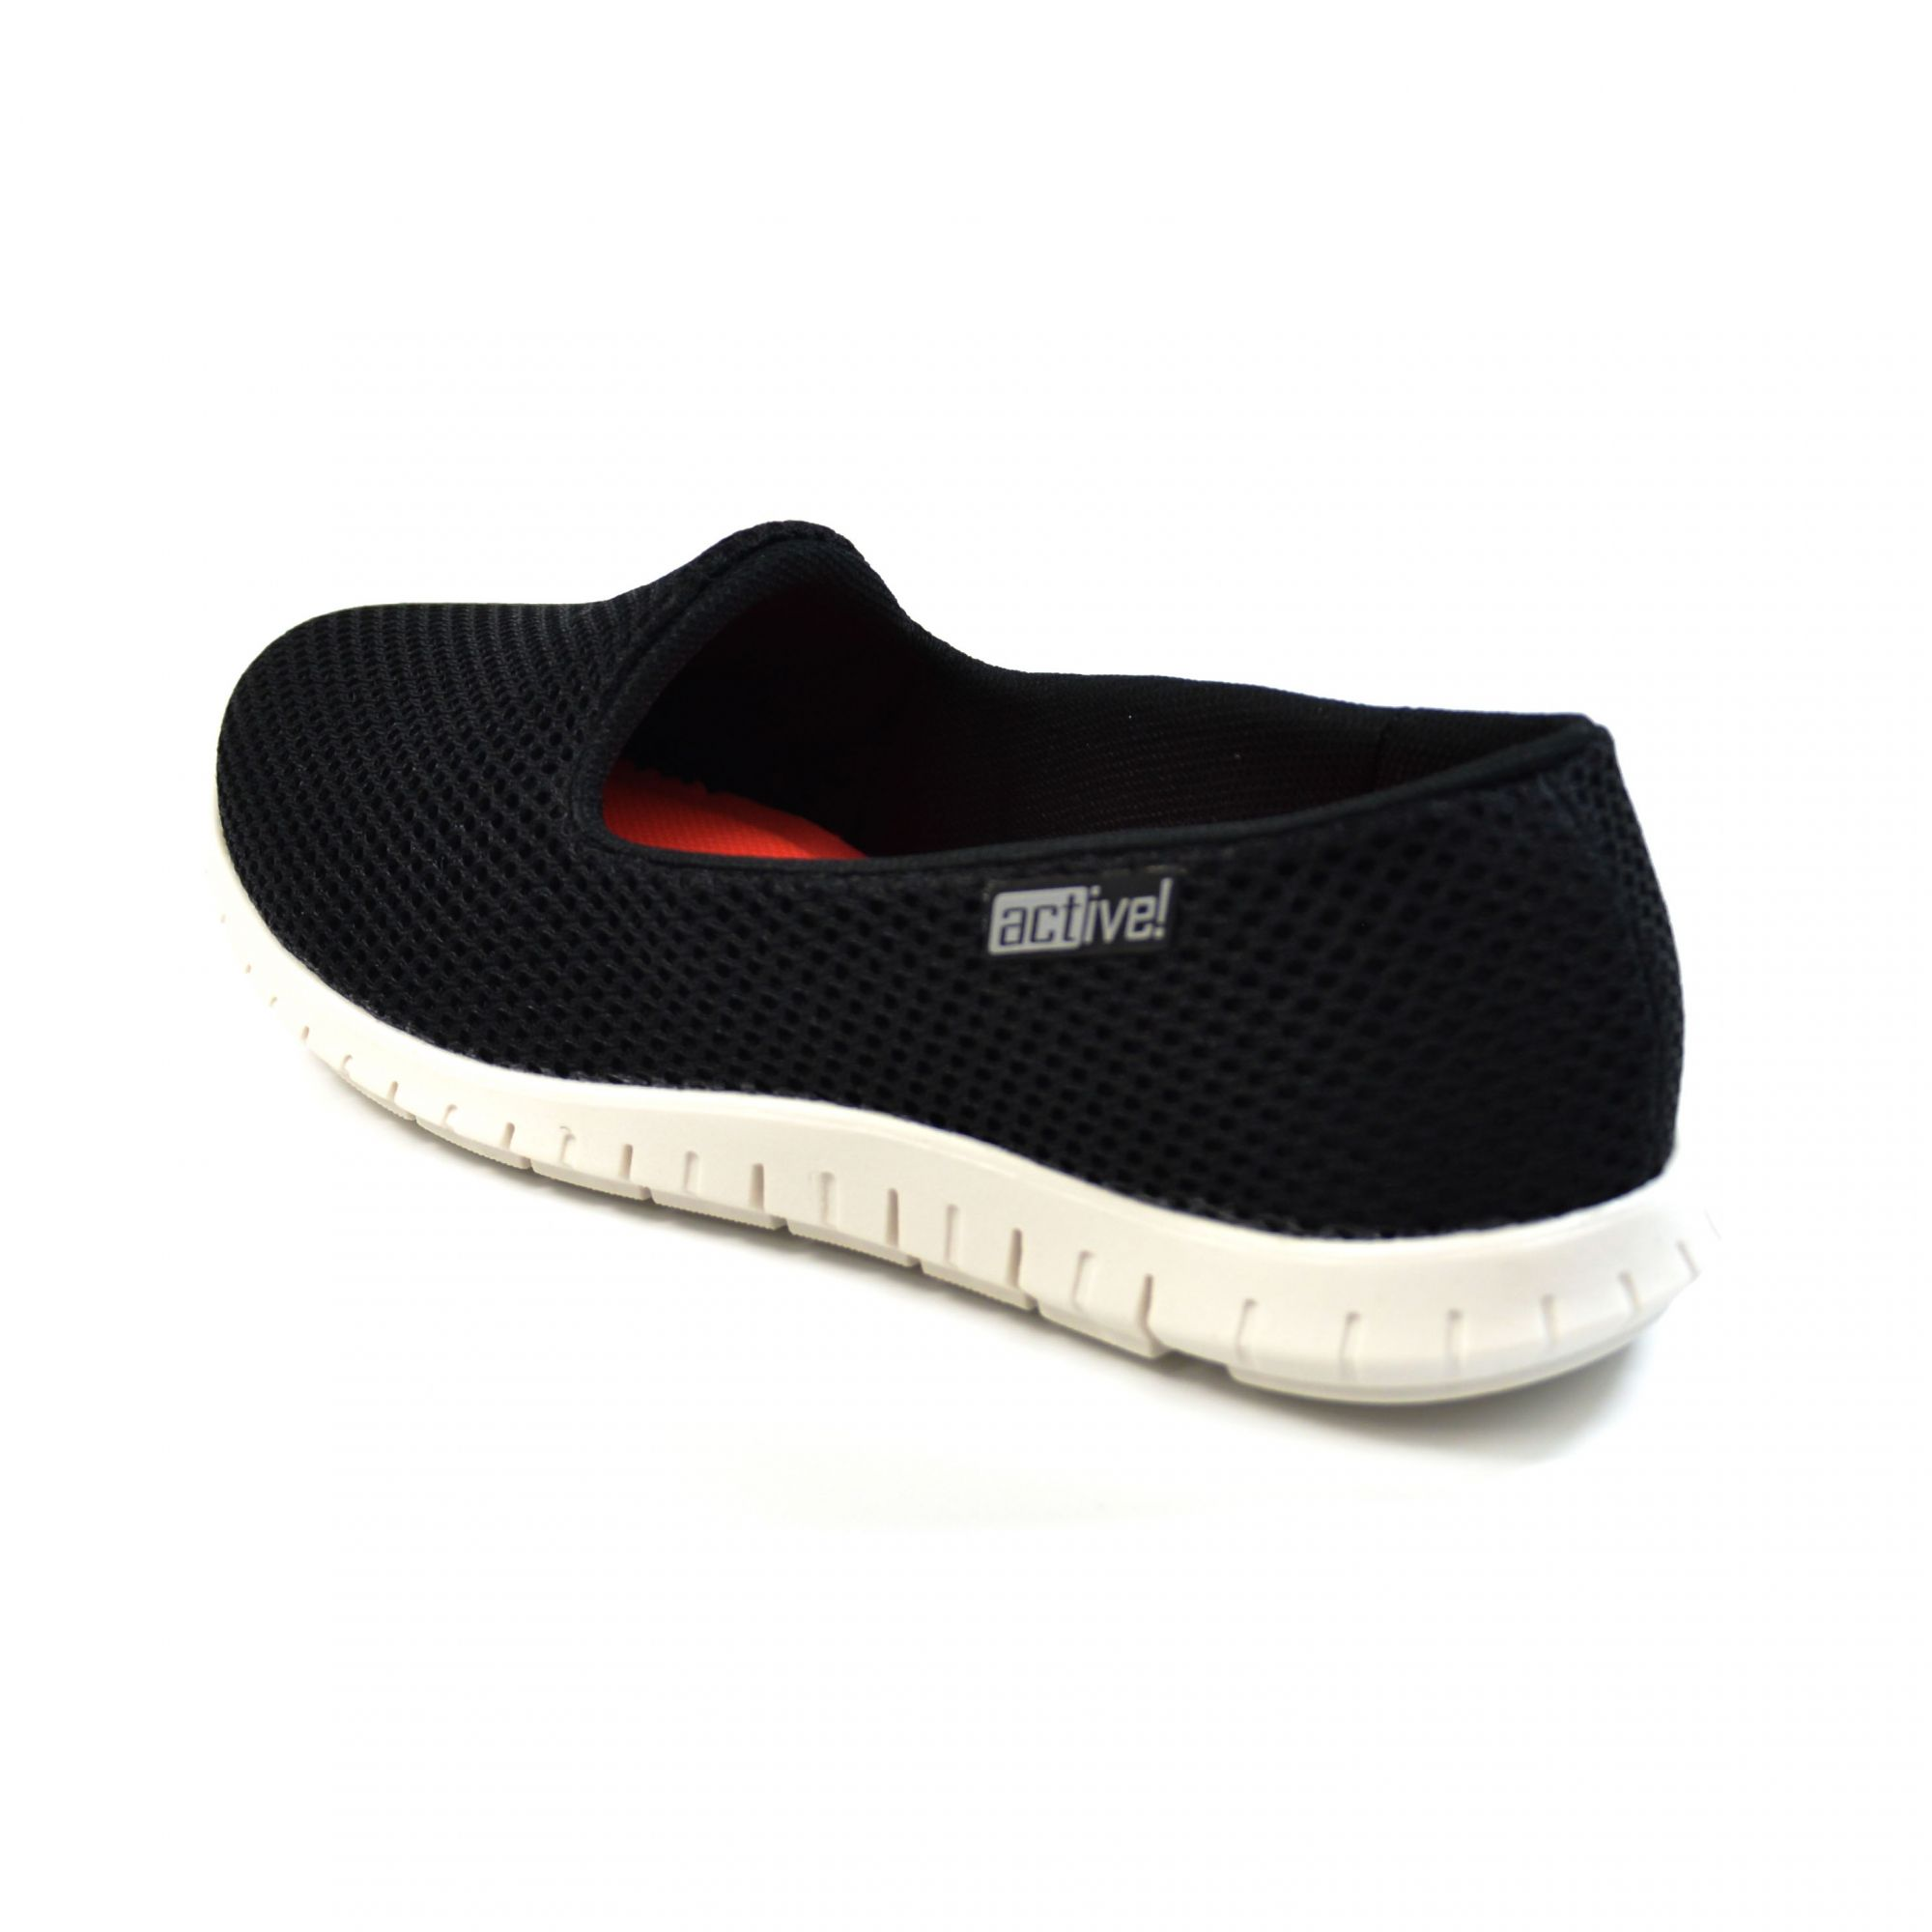 E> TENIS SLIP ON 4202.100 PRETO BEIRA RIO ACTIVE 16848